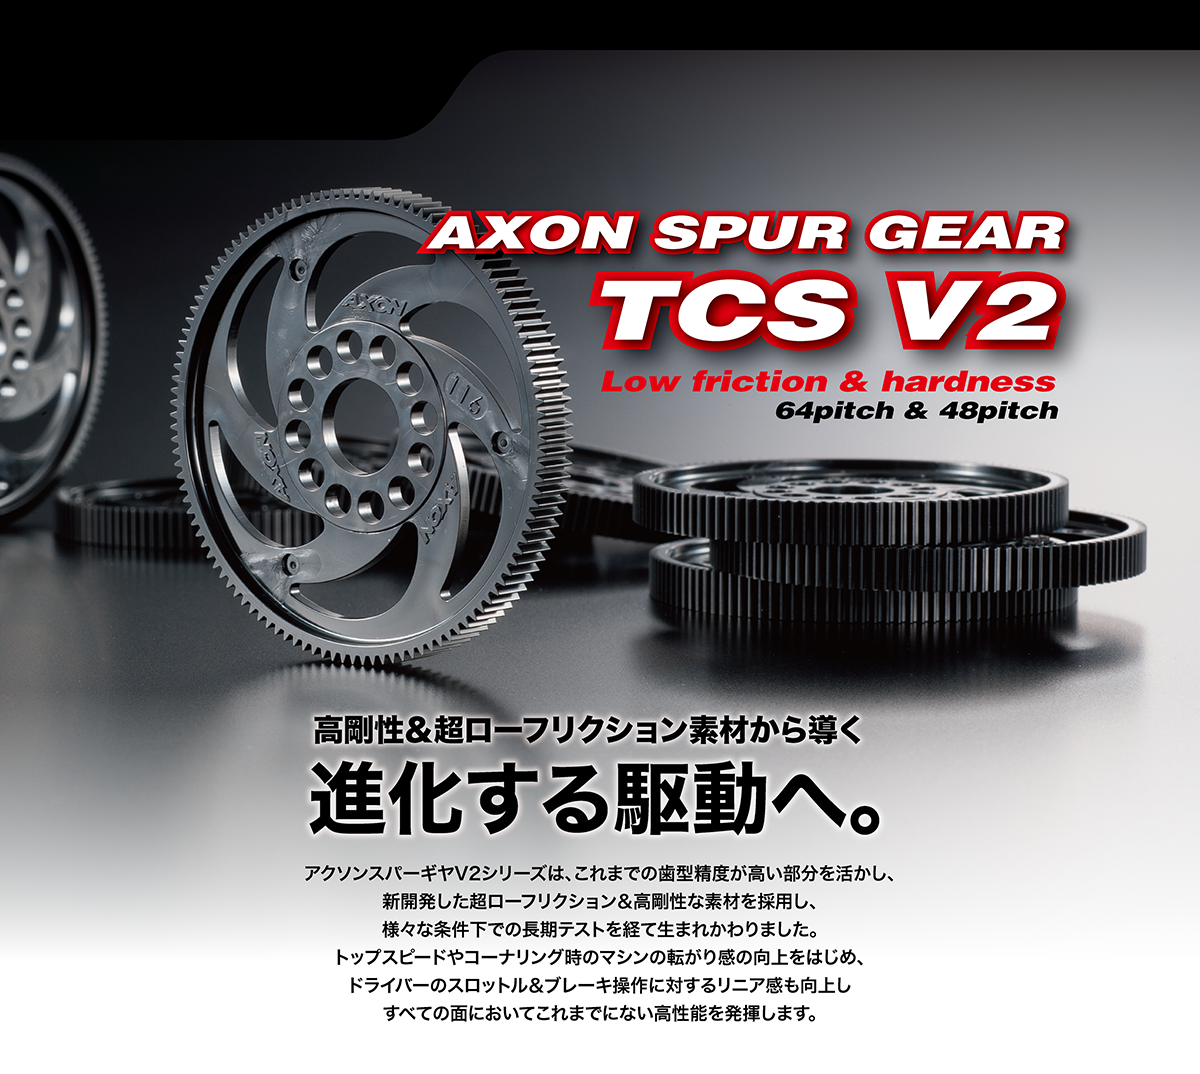 https://store.pro-s-futaba.co.jp/images/product_TCS-V2_202010.png